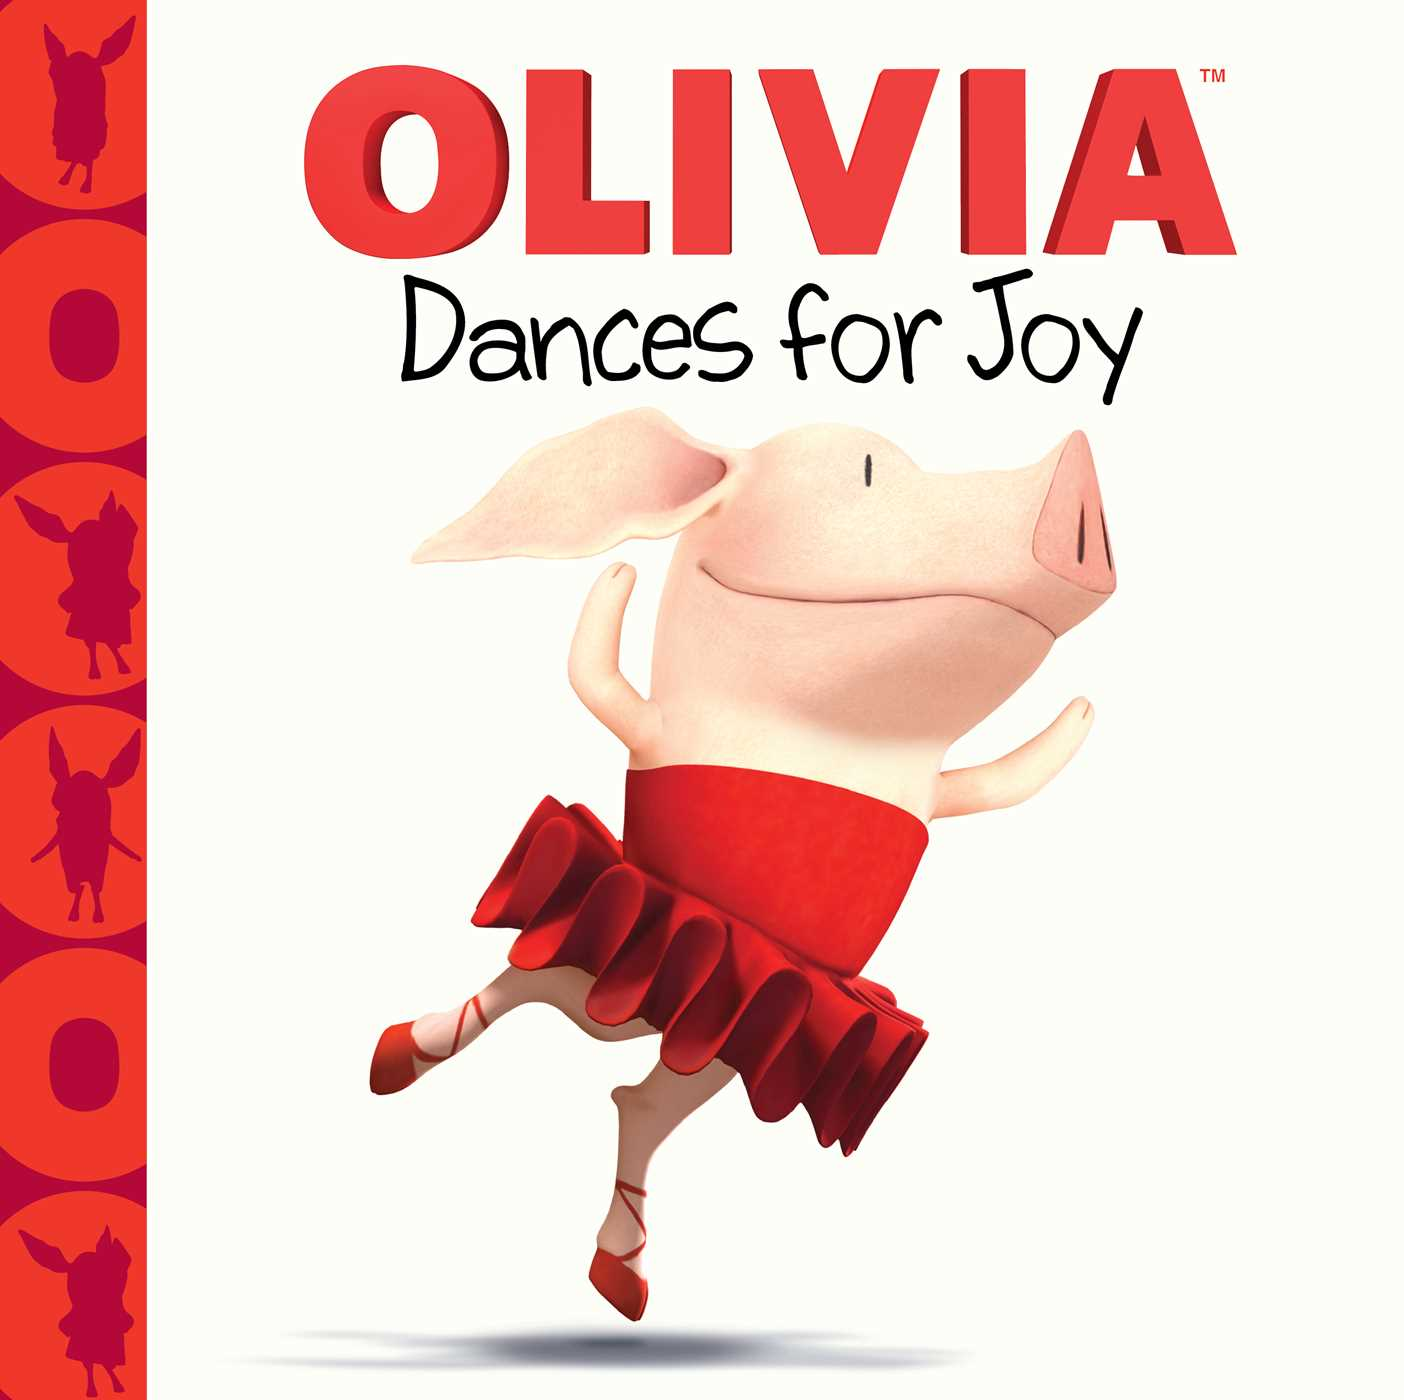 Olivia-dances-for-joy-9781442452589_hr